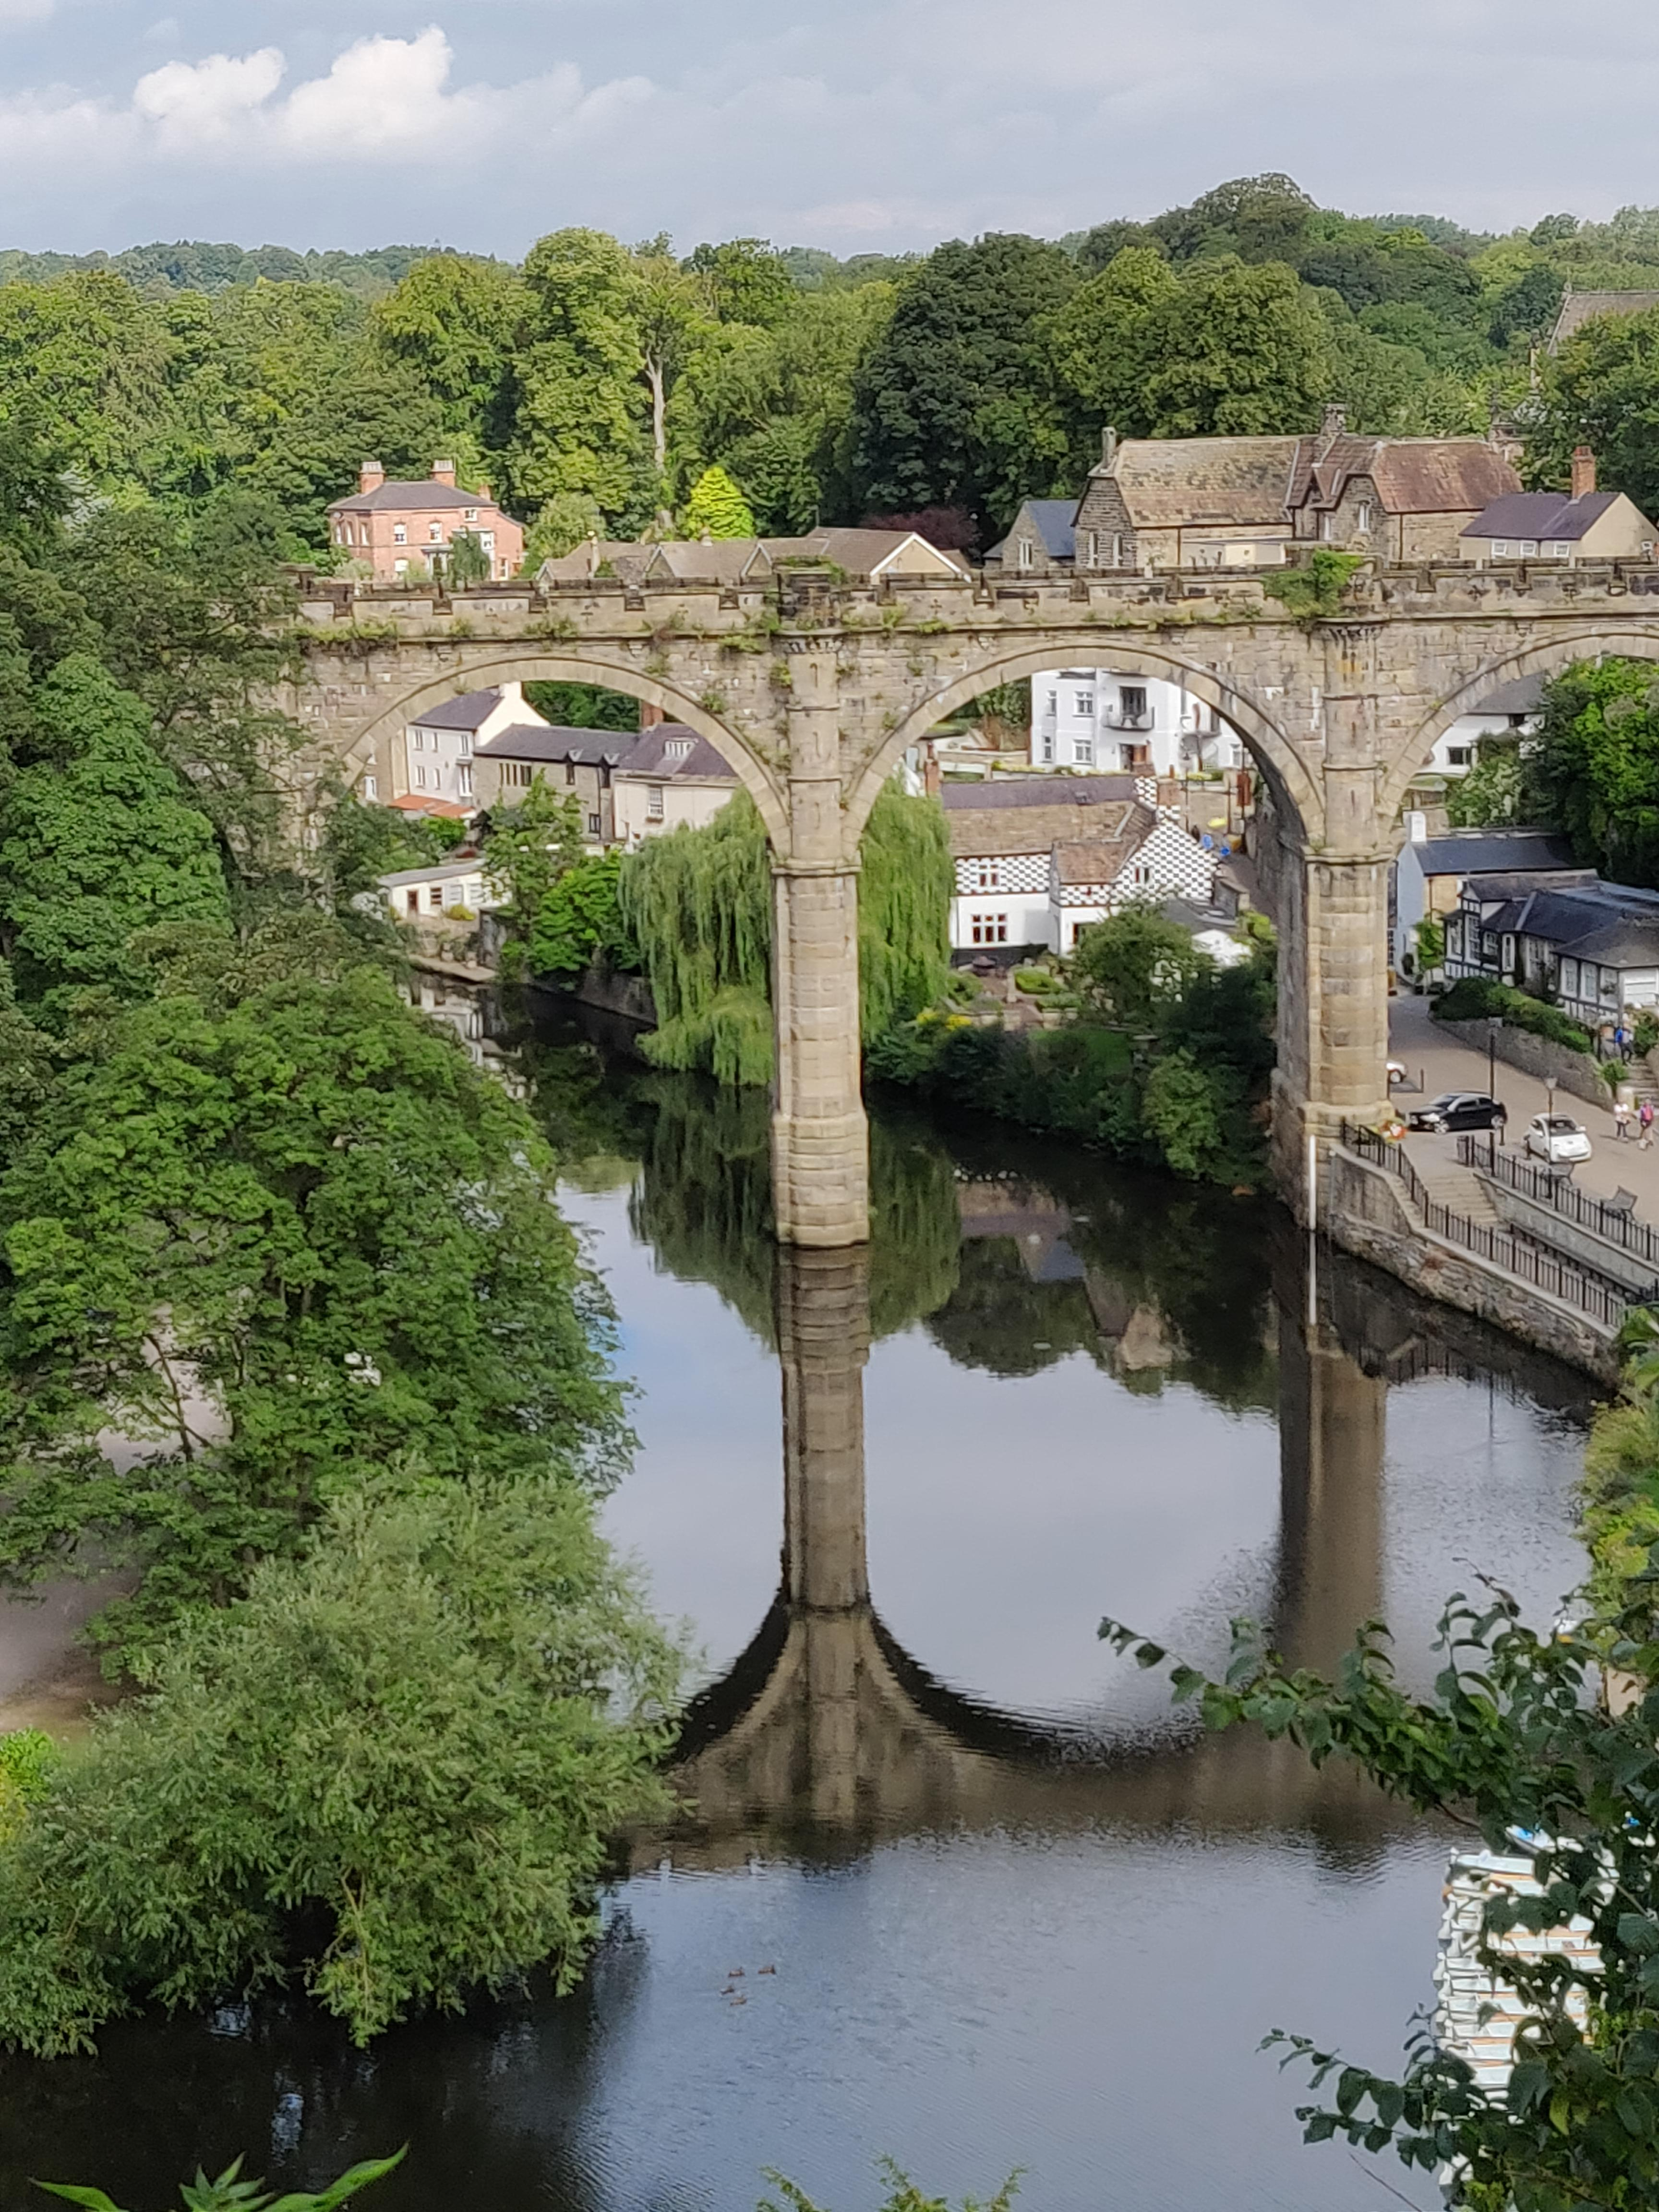 knaresborough.jpg